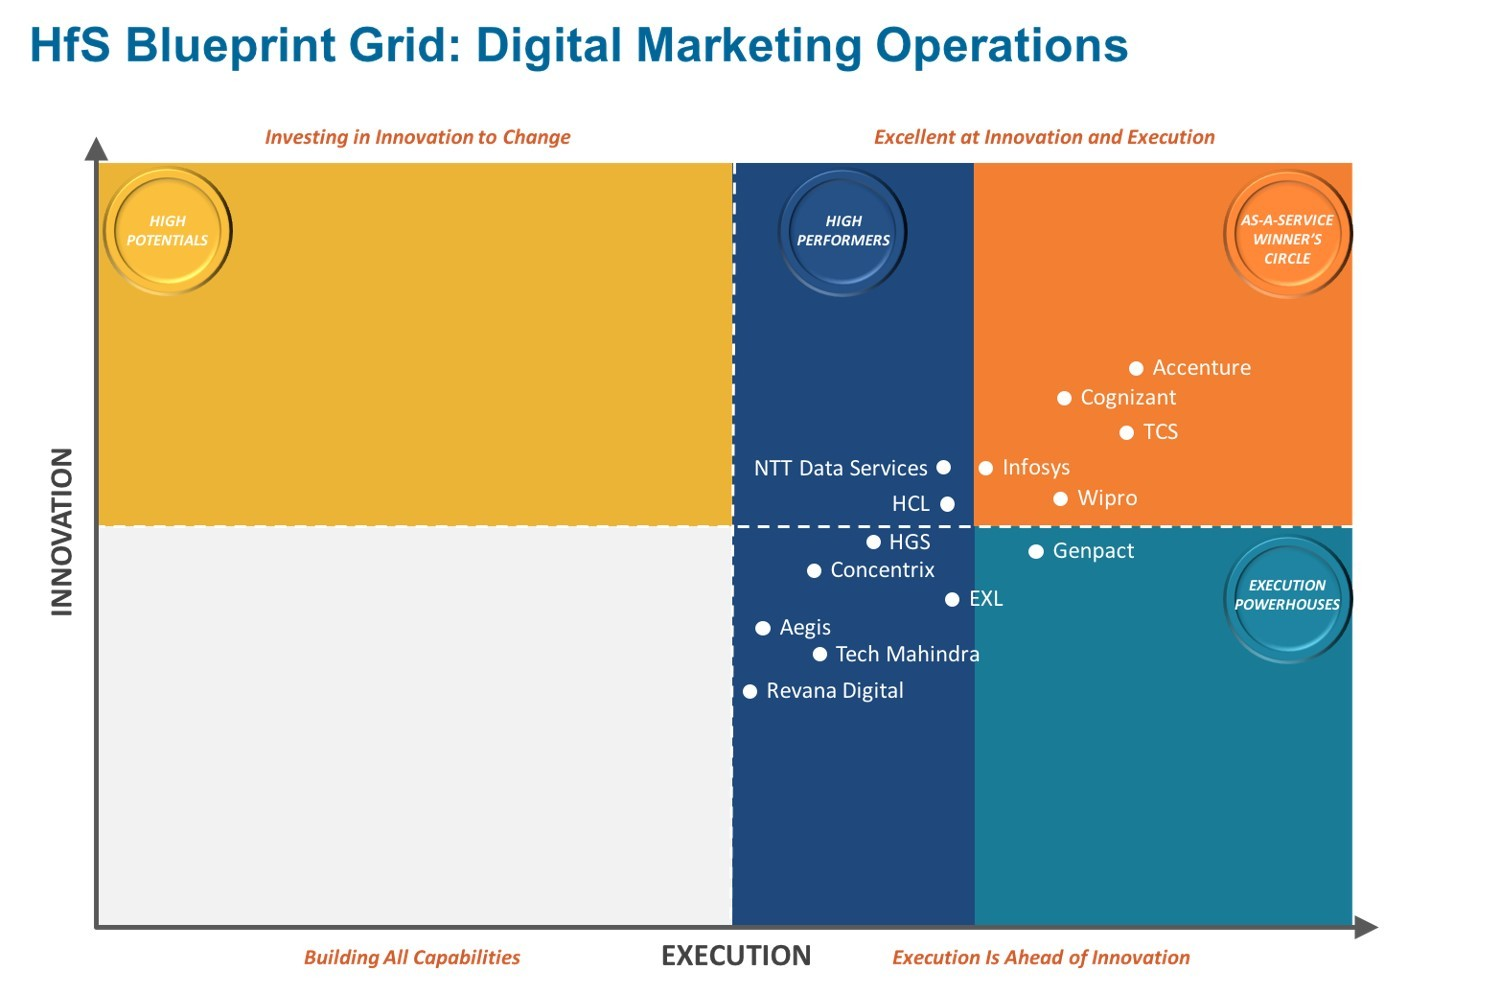 Accenture positioned as overall market leader in digital marketing accenture positioned as overall market leader in digital marketing operations by hfs research business wire malvernweather Images